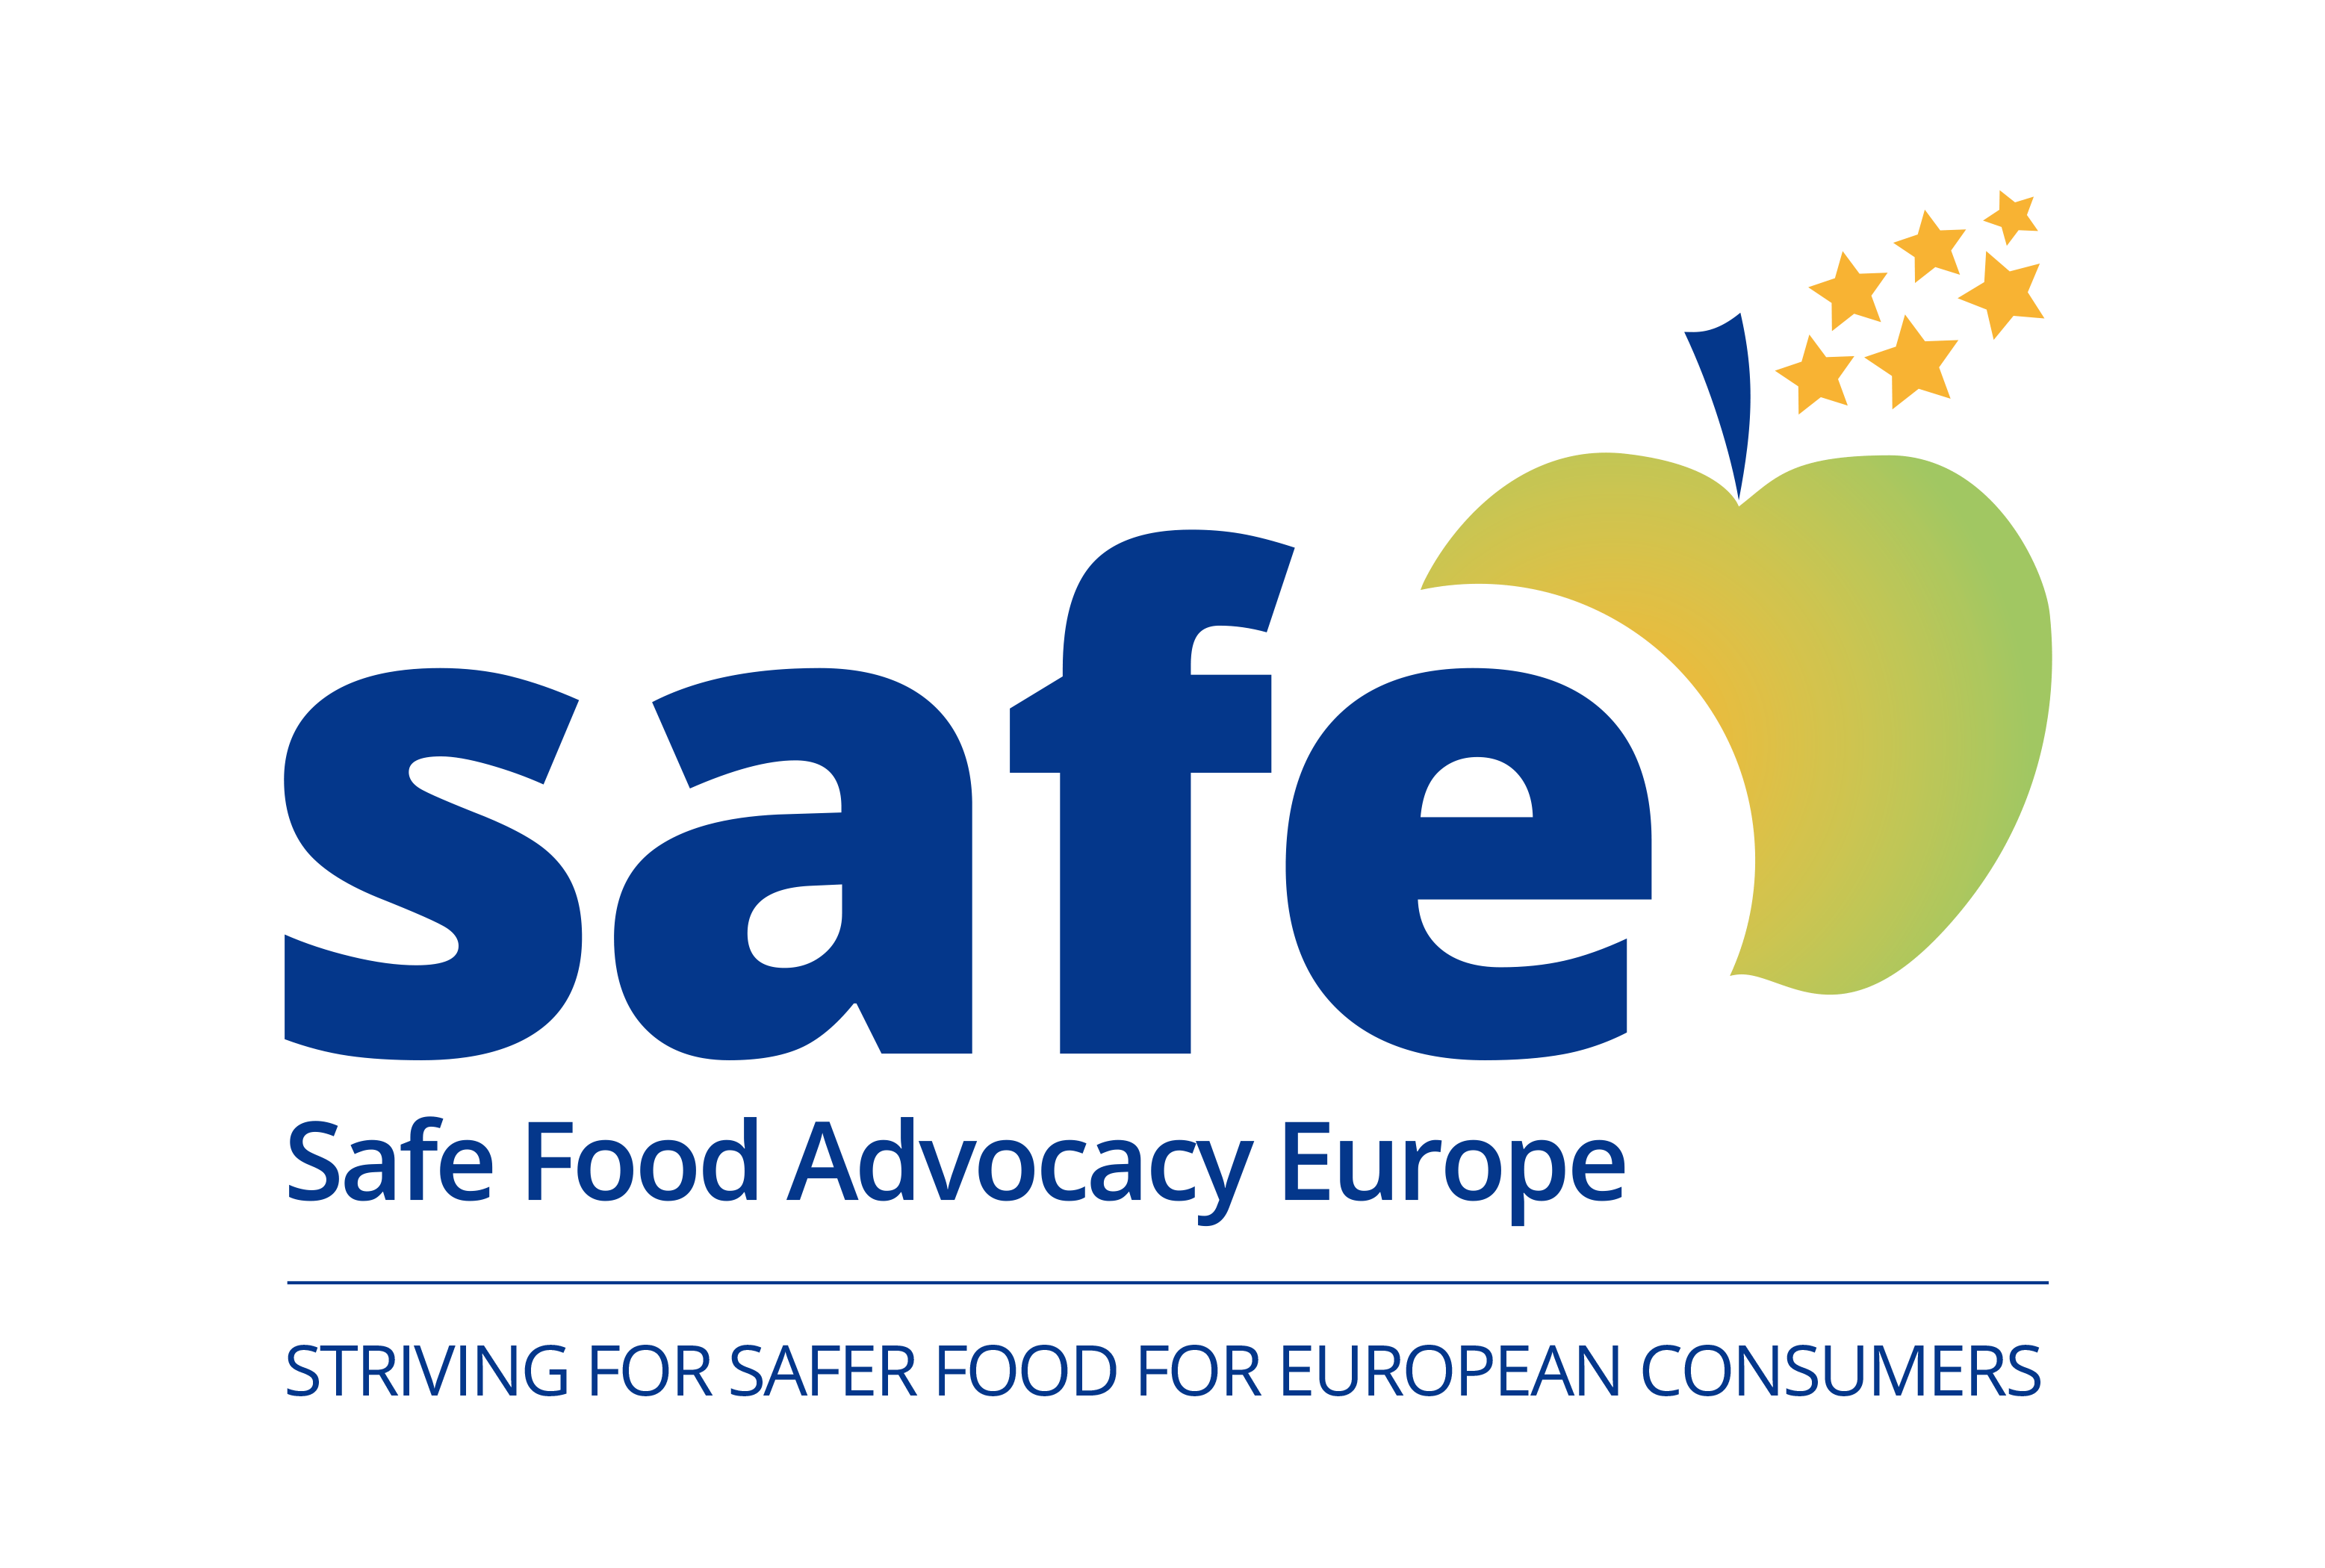 Safe Food Advocacy Europe